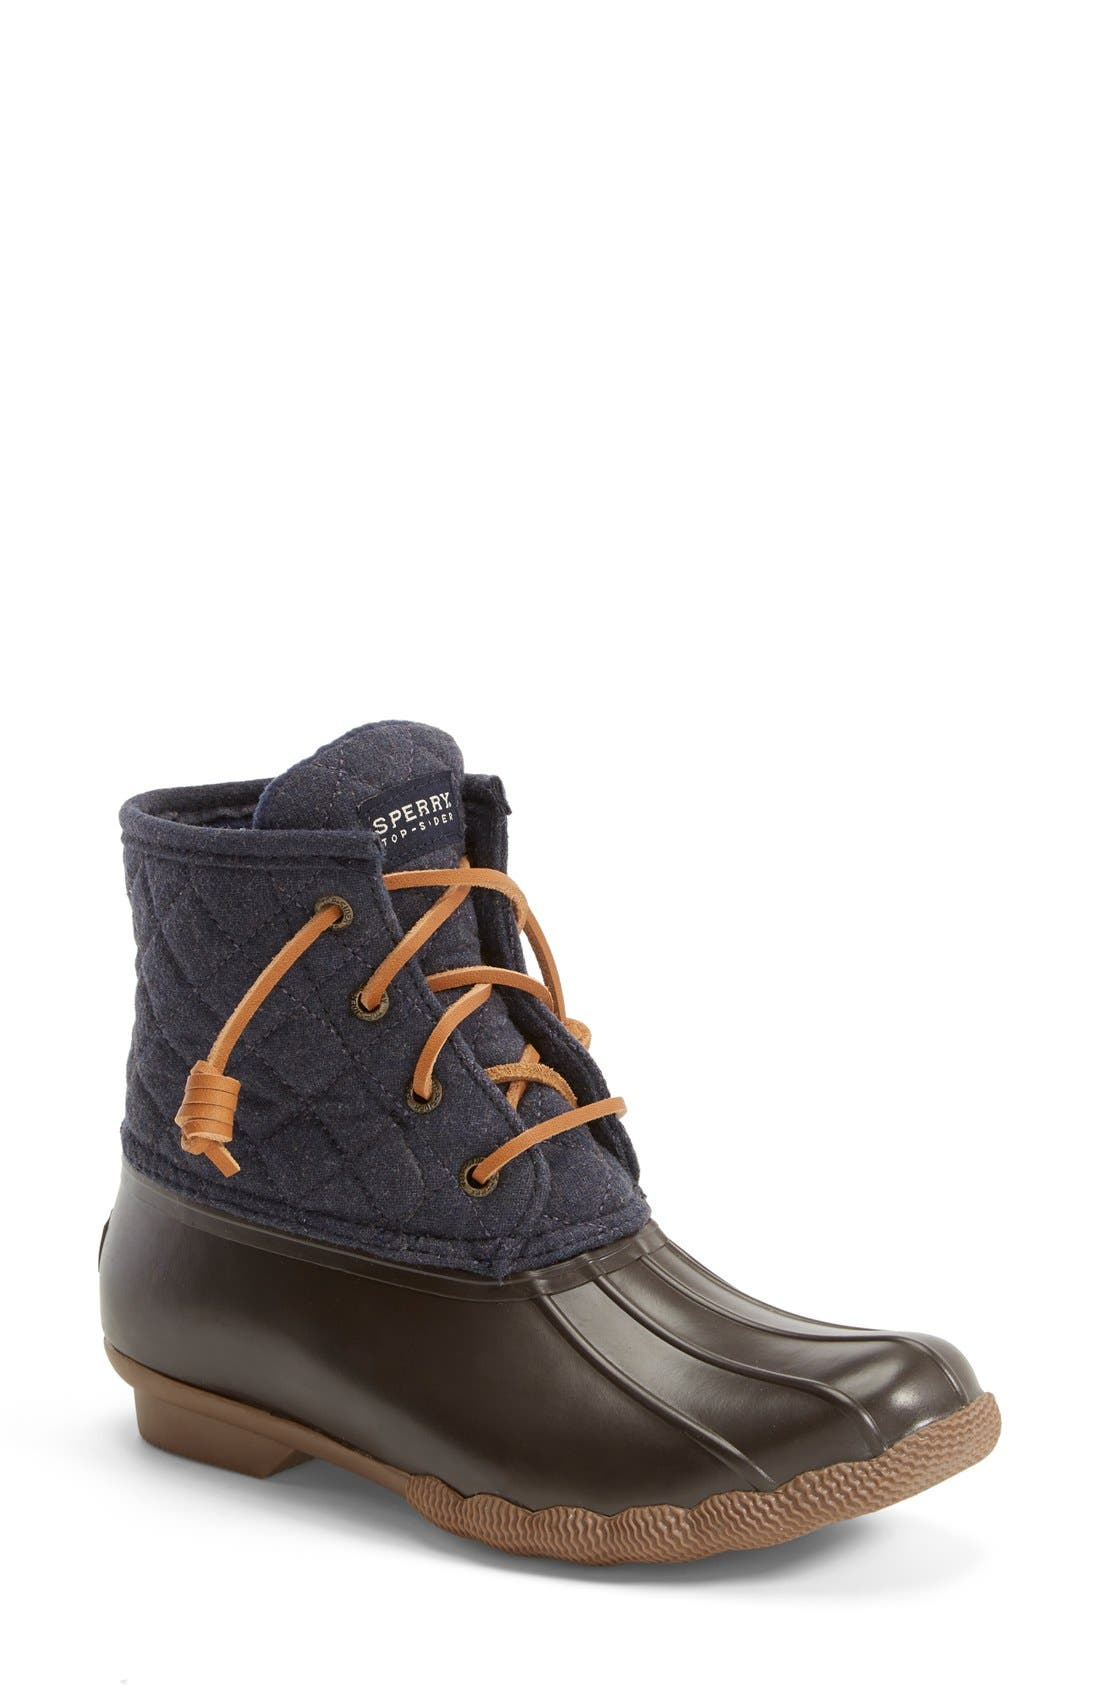 Alternate Image 1 Selected - Sperry 'Saltwater' Waterproof Rain Boot (Women) (Nordstrom Exclusive)